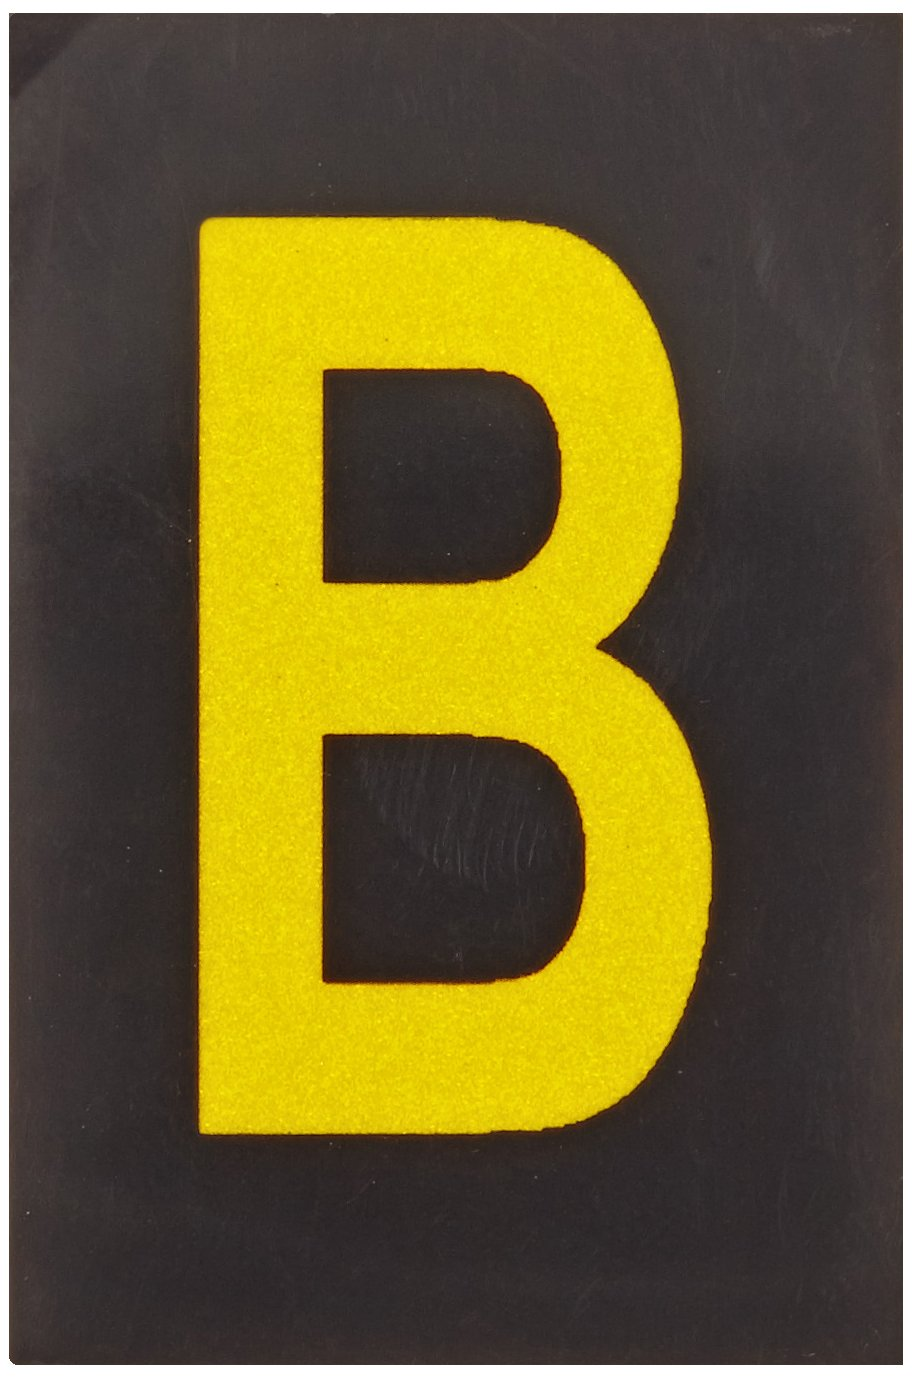 Legend B B-997 Engineering Grade Bradylite Reflective Sheeting Brady 5905-B Bradylite 1-1//2 Height 1 Width Pack Of 25 Yellow On Black Reflective Letter